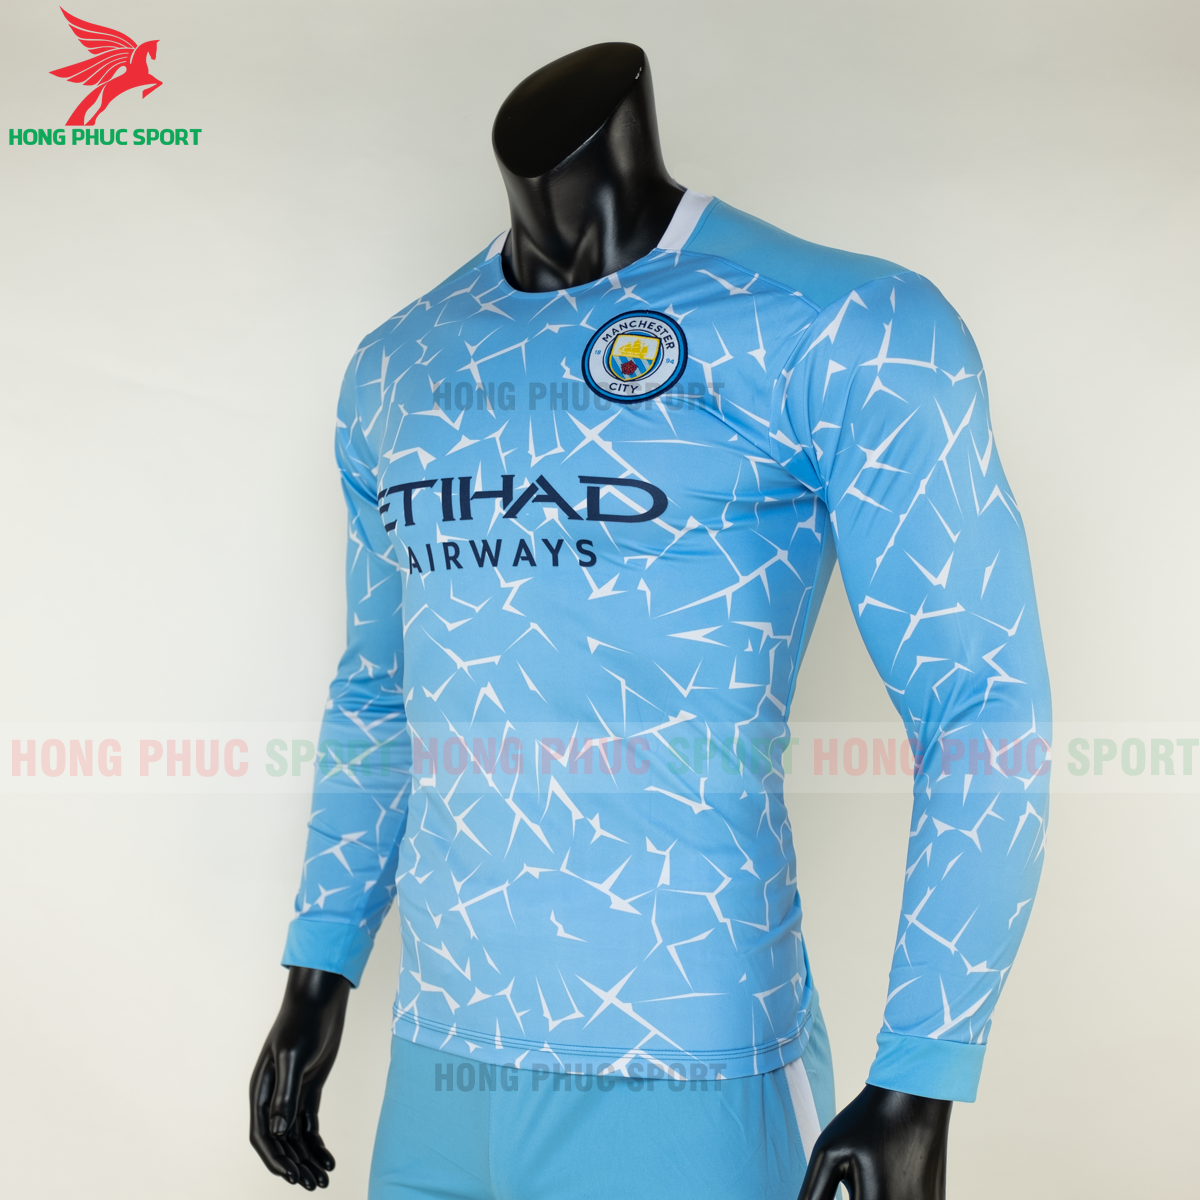 https://cdn.hongphucsport.com/unsafe/s4.shopbay.vn/files/285/ao-dai-tay-manchester-city-2020-san-nha-5-5f8fdbe9d02b6.png